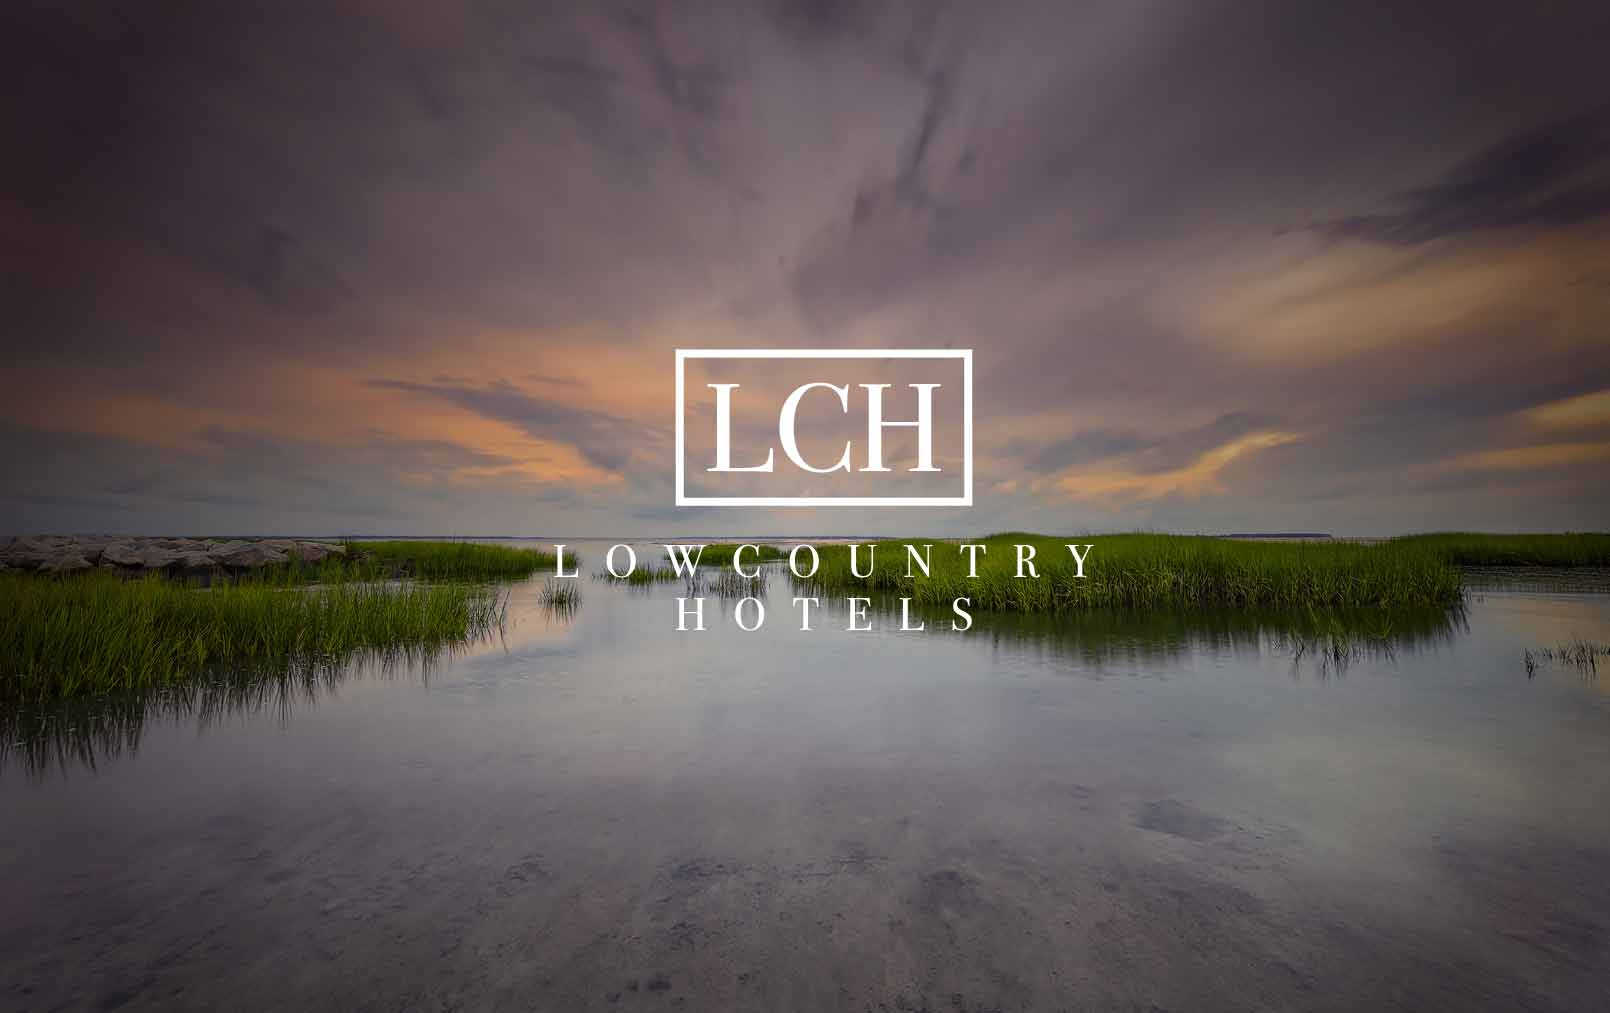 Lowcountry Hotels - Charleston, Mt. Pleasant, Summerville SC